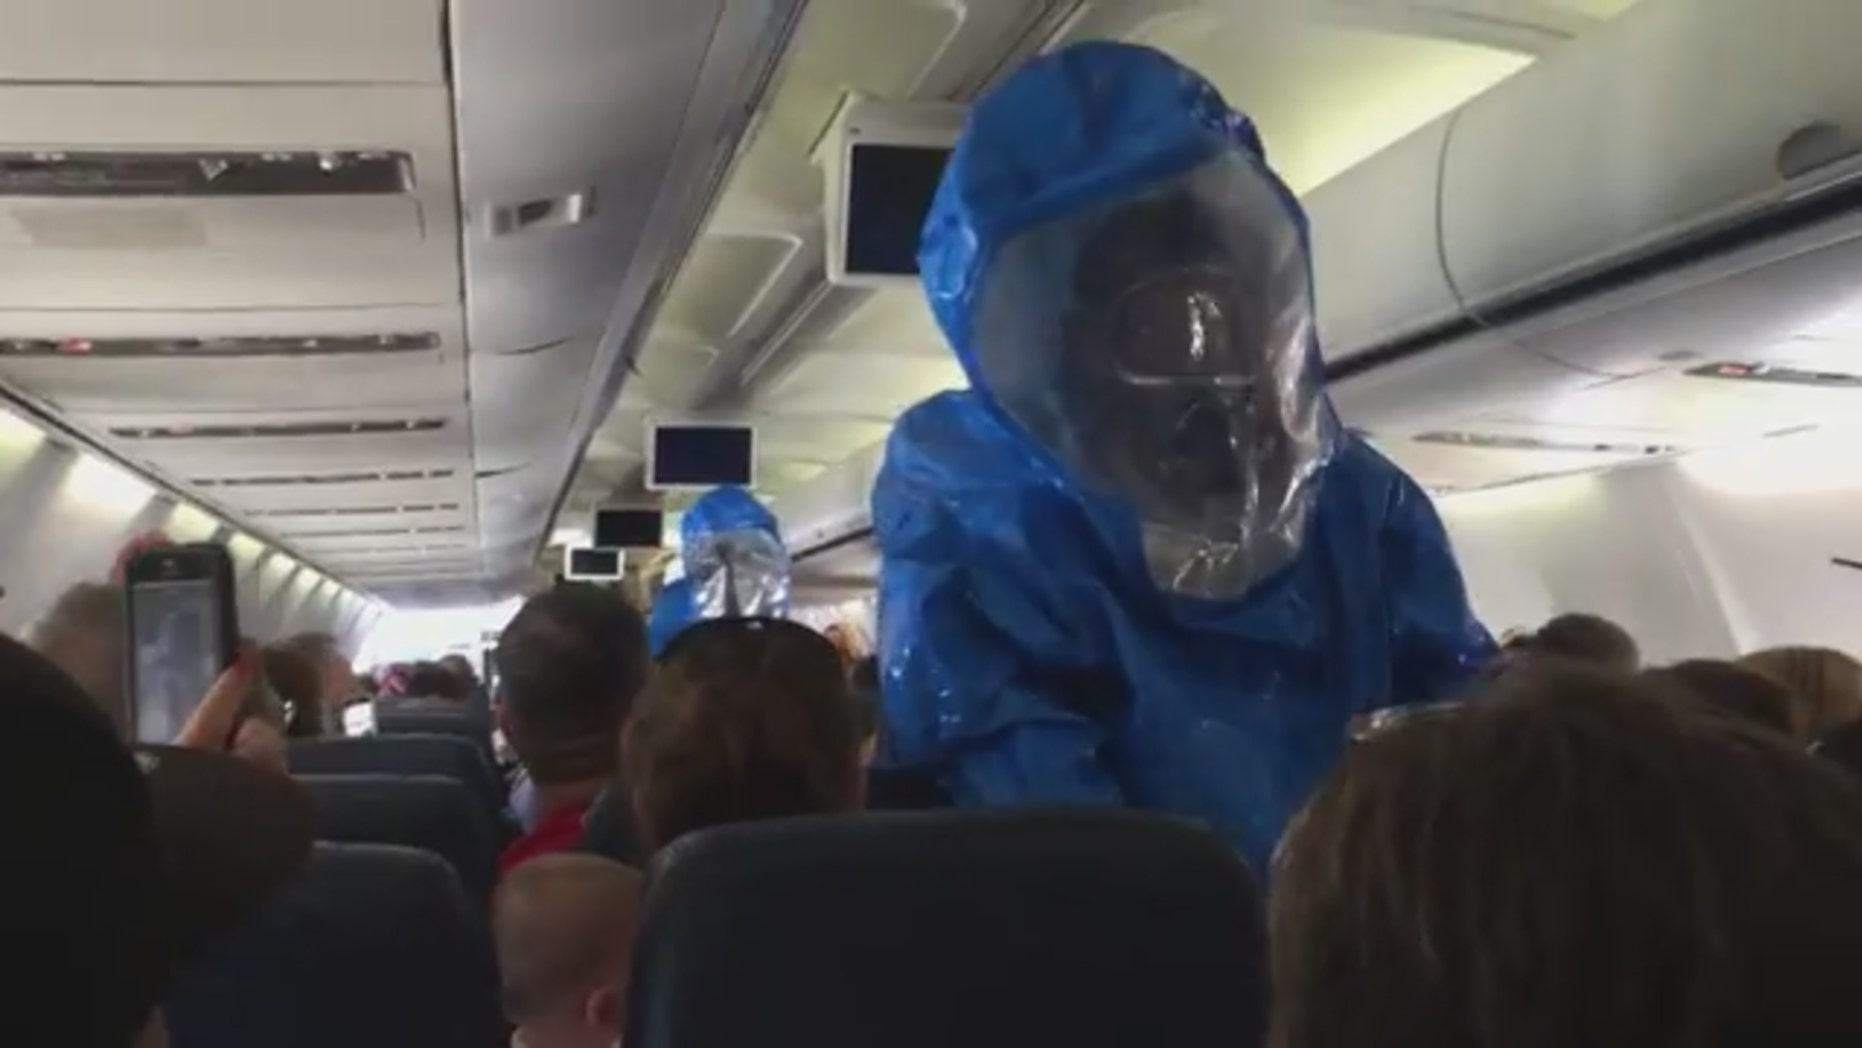 Emergency responders in hazmat suits on US Airways flight 845 from Philadelphia to Dominican Republic after a passenger caused a health scare.